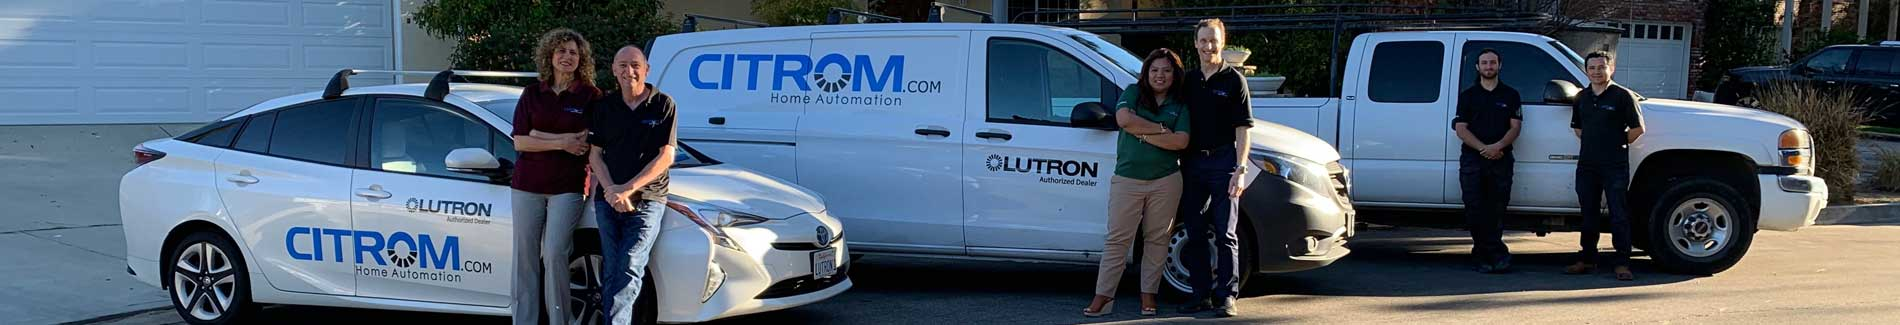 Citrom Home Automation Contact